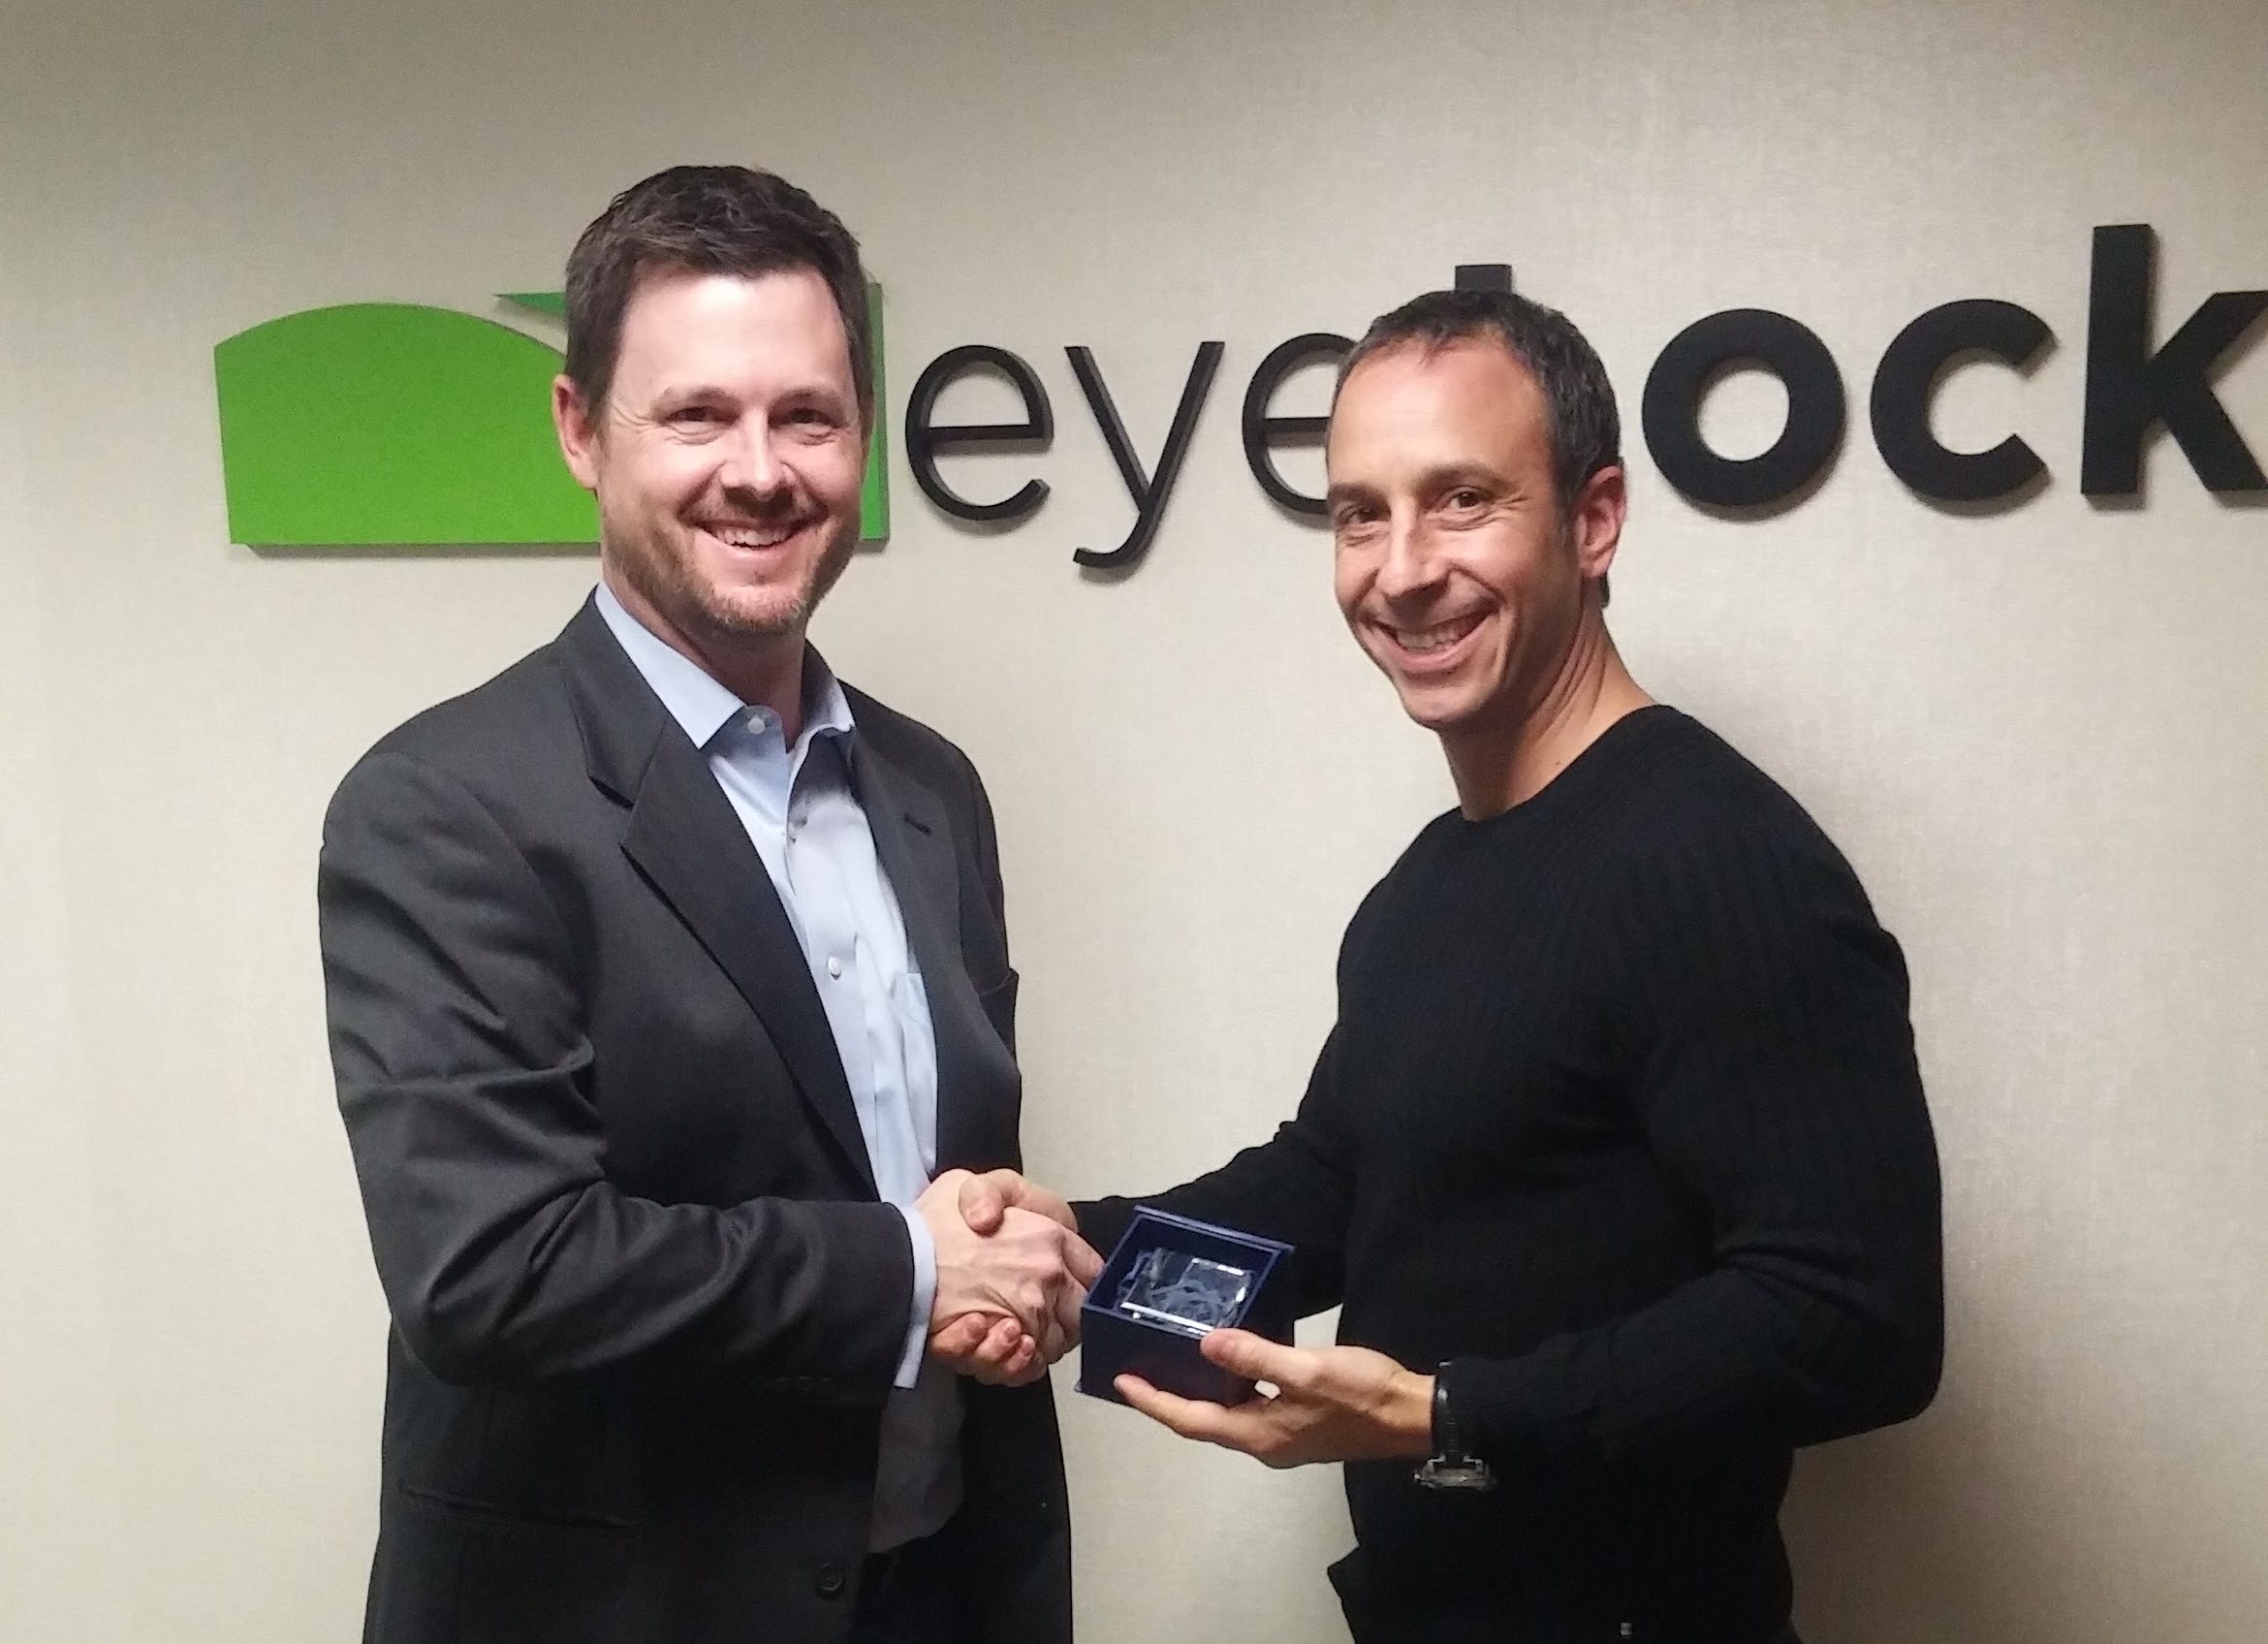 Eyelock's Chief Marketing and Business Development Officer Anthony Antolino (R) being presented with the 2016 BIG Innovation Award in New York.by Business Intelligence Group's Managing Director Russ Fordyce (L).